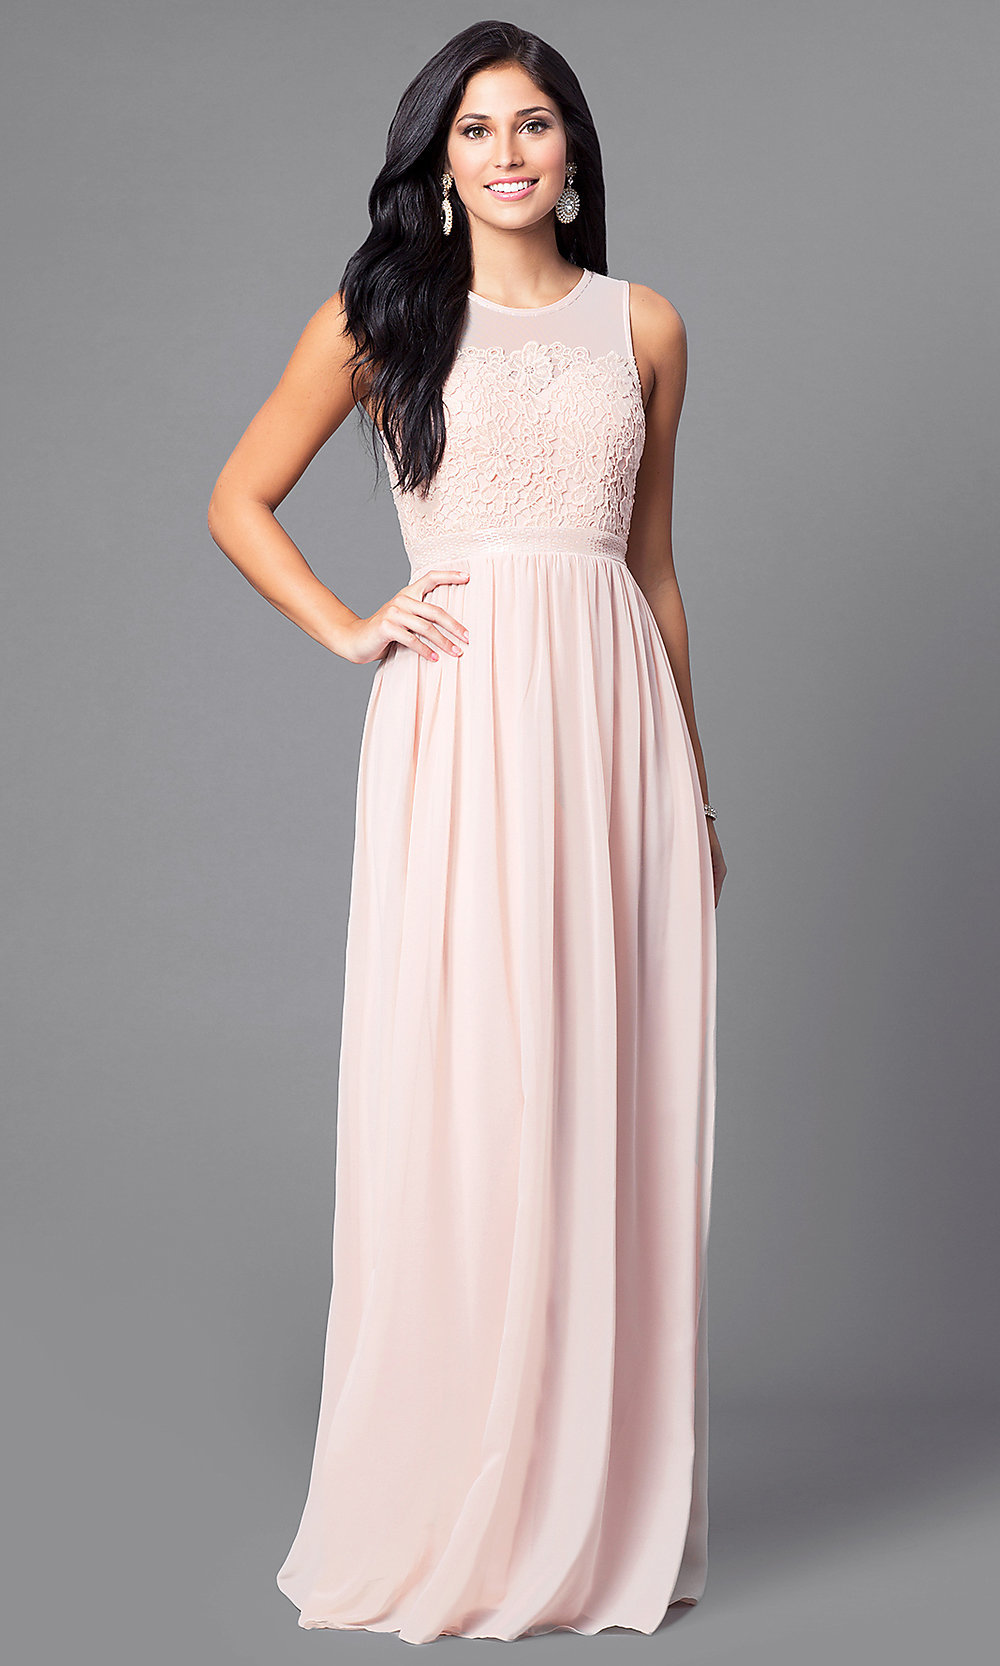 Illusion-Back Sleeveless Long Dress - PromGirl